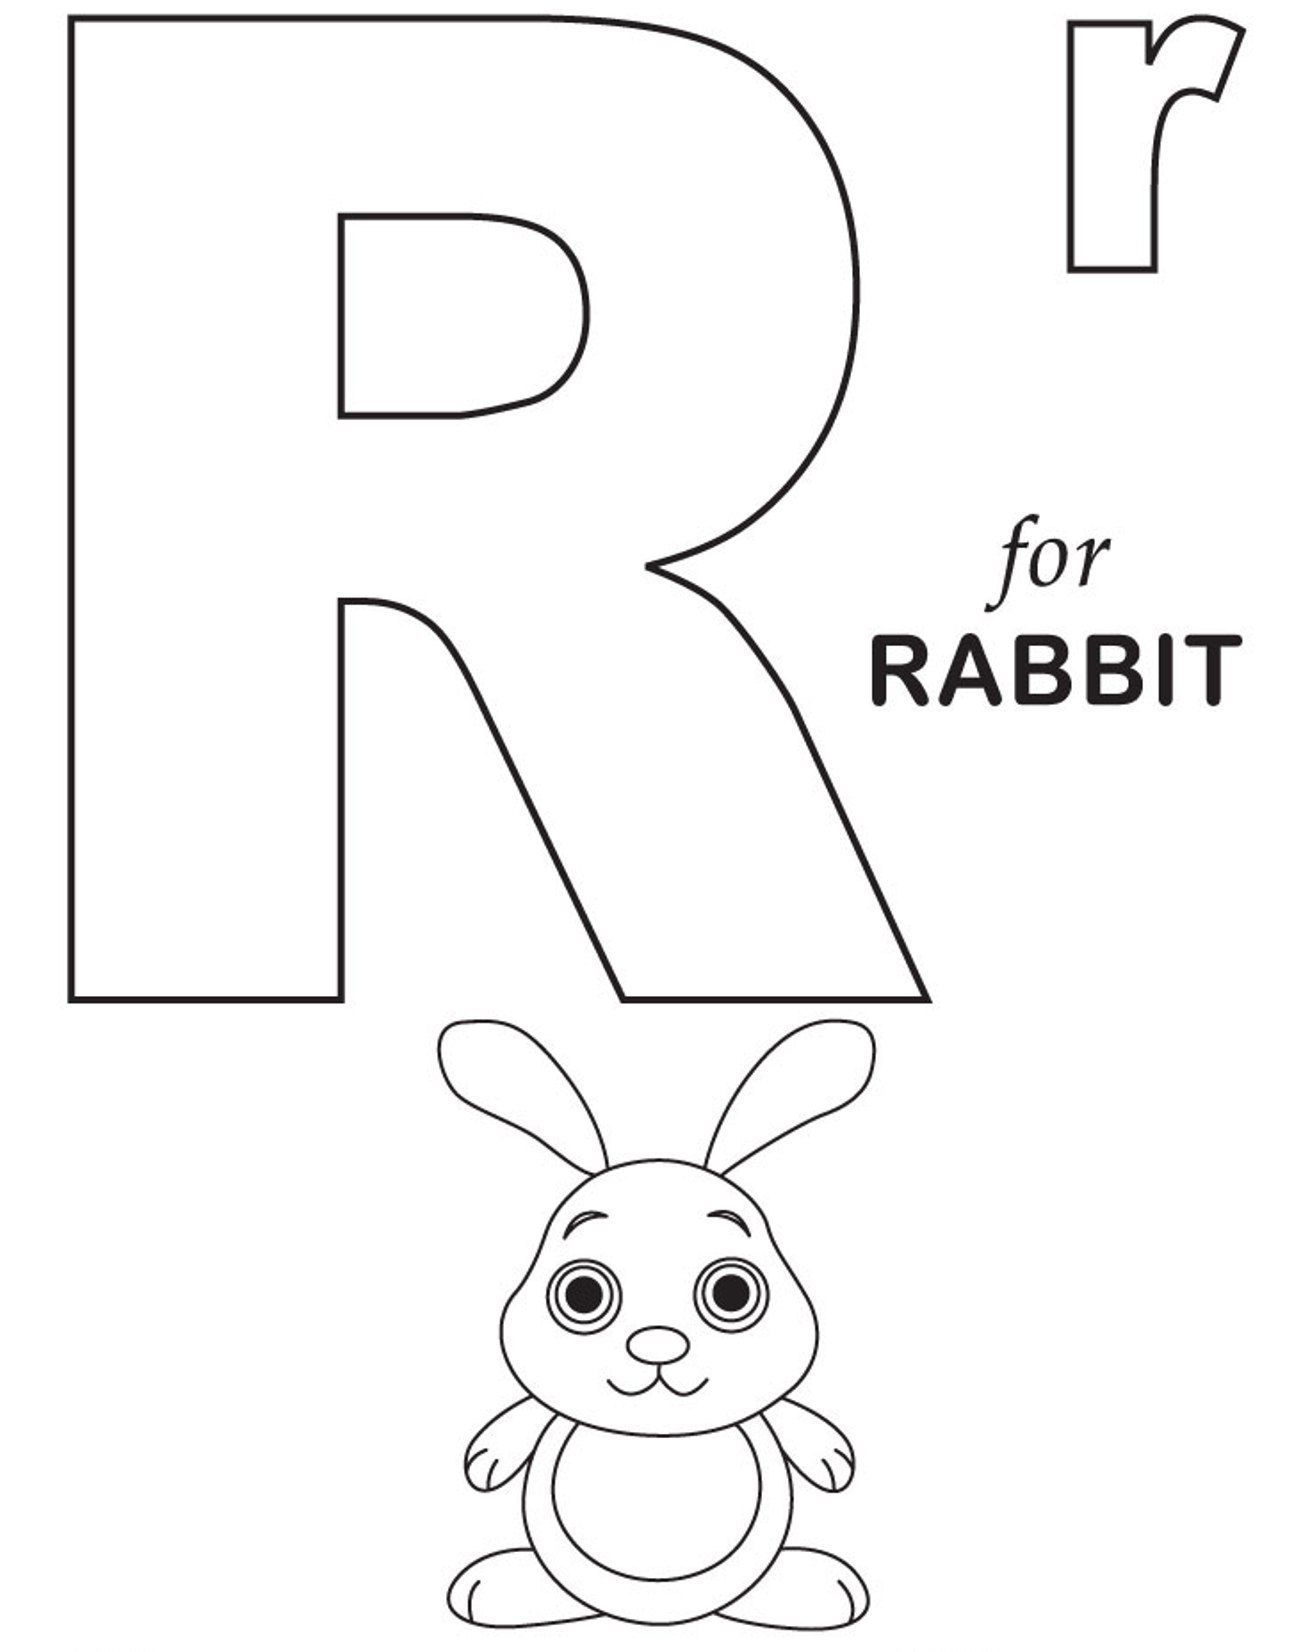 Alphabet Coloring Pages Free Coloring Pages For Rabbit